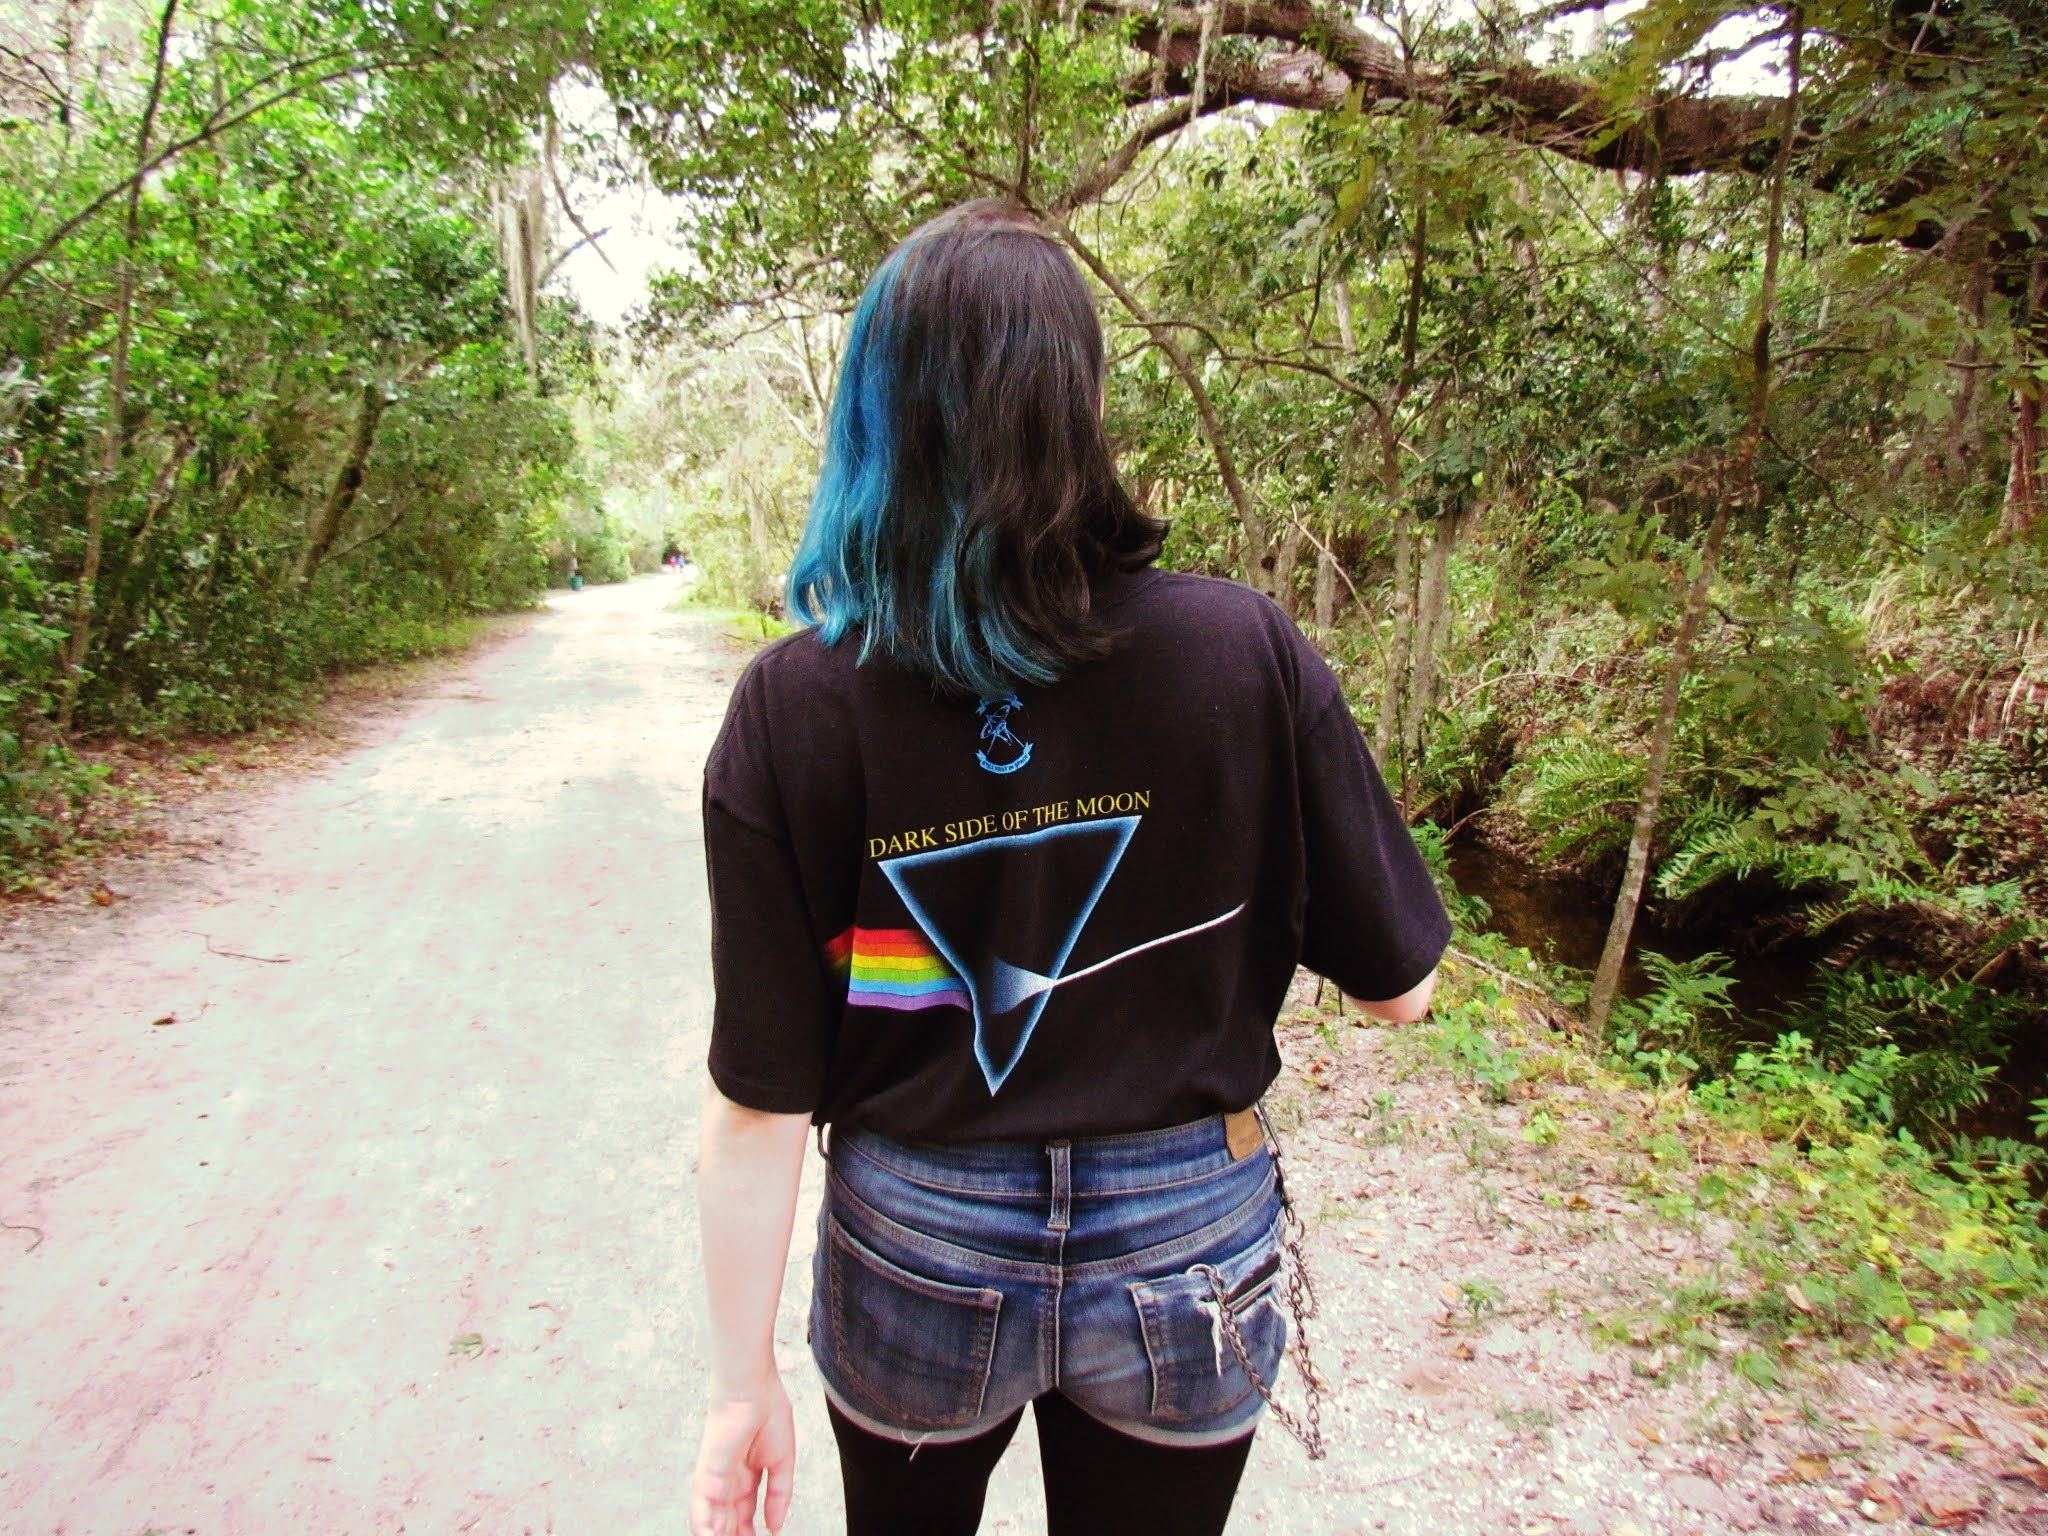 A young girl with blue mermaid hair in the forest on a cool autumn day with a Pink Floyd tee shirt